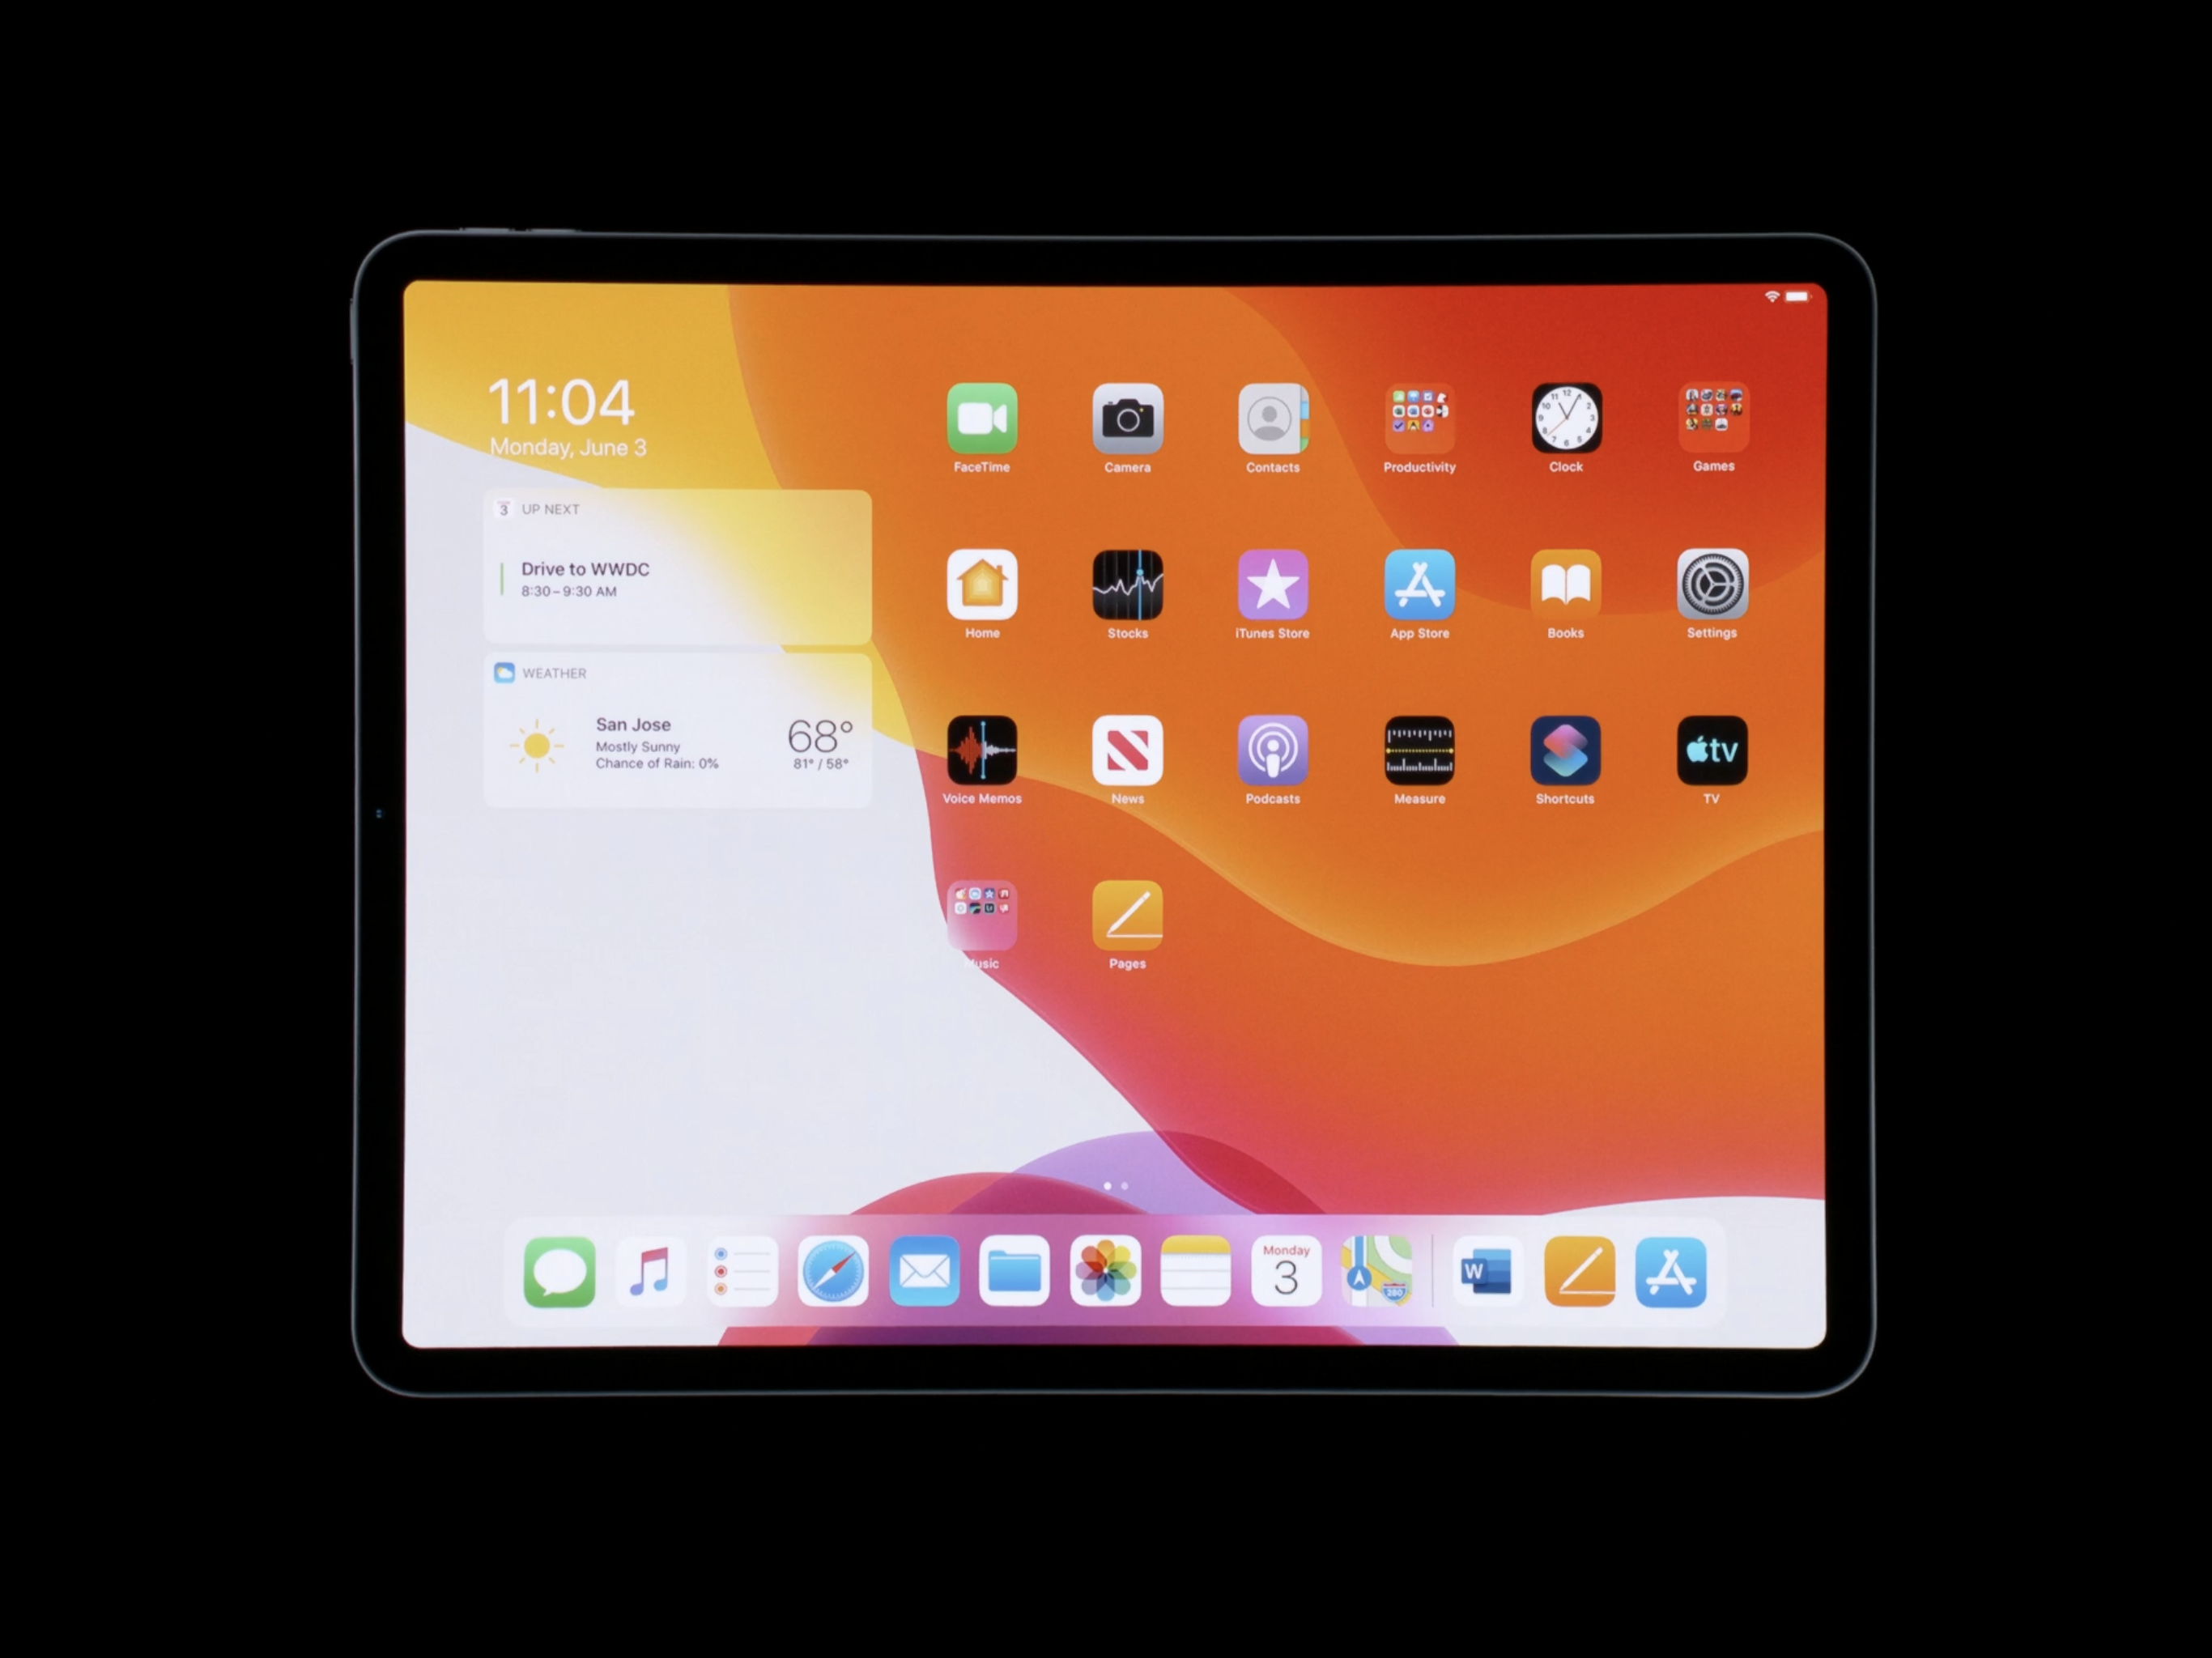 ipados-homescreen.png